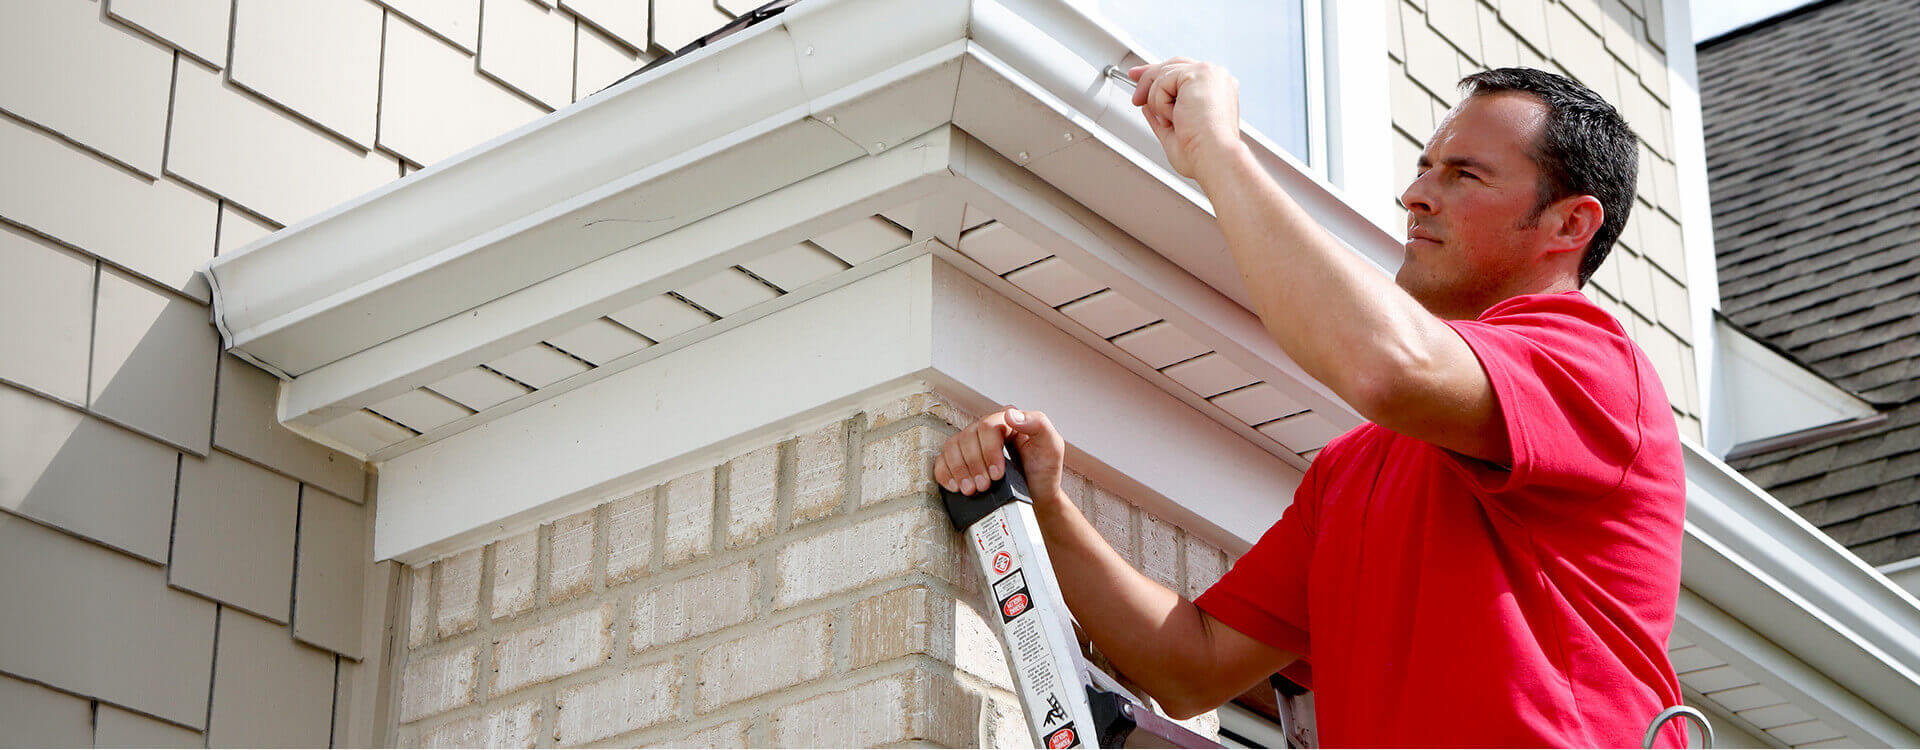 Quick Home Improvement Solutions From One Handyman To Another